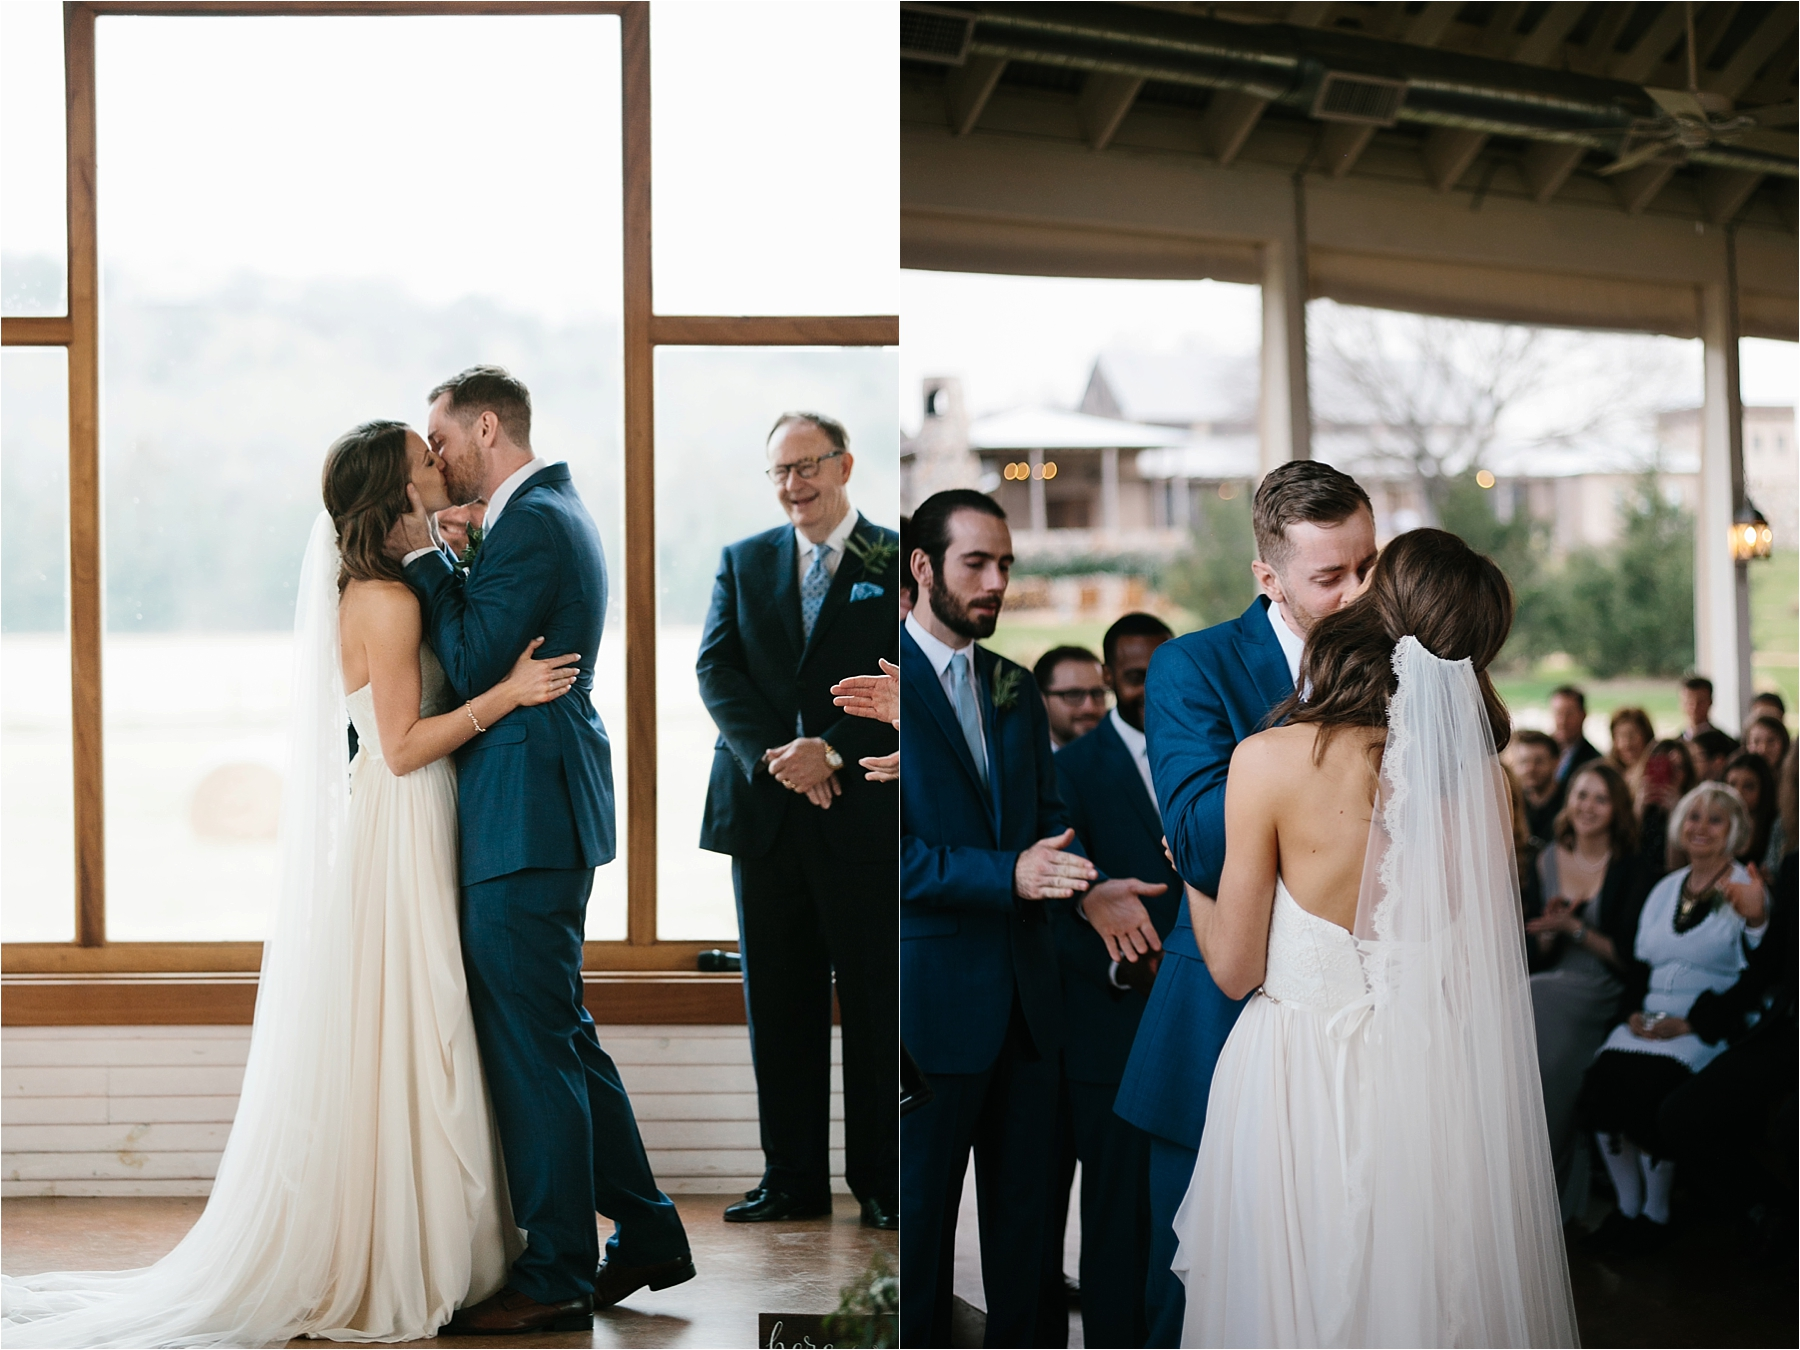 Lauren + Matt __ an intimate, emotional, blush pink, navy blue, and greenery toned wedding accents at the Brooks at Weatherford by North Texas Wedding Photographer Rachel Meagan Photography137